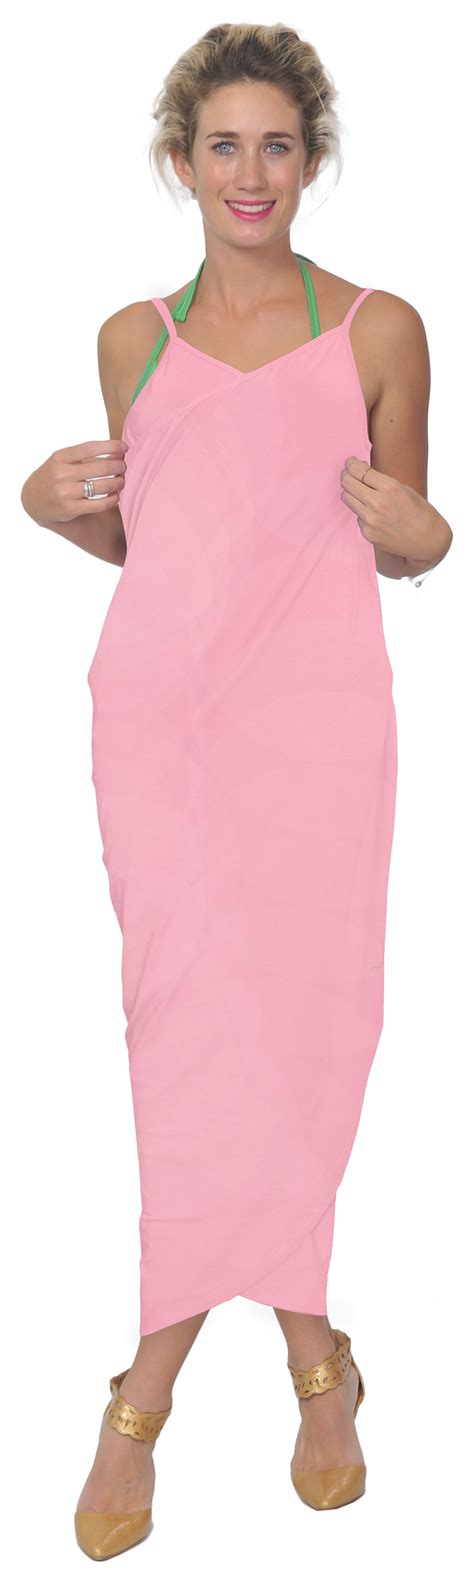 swimsuit cover up womens maxi swimsuit coverup cover up